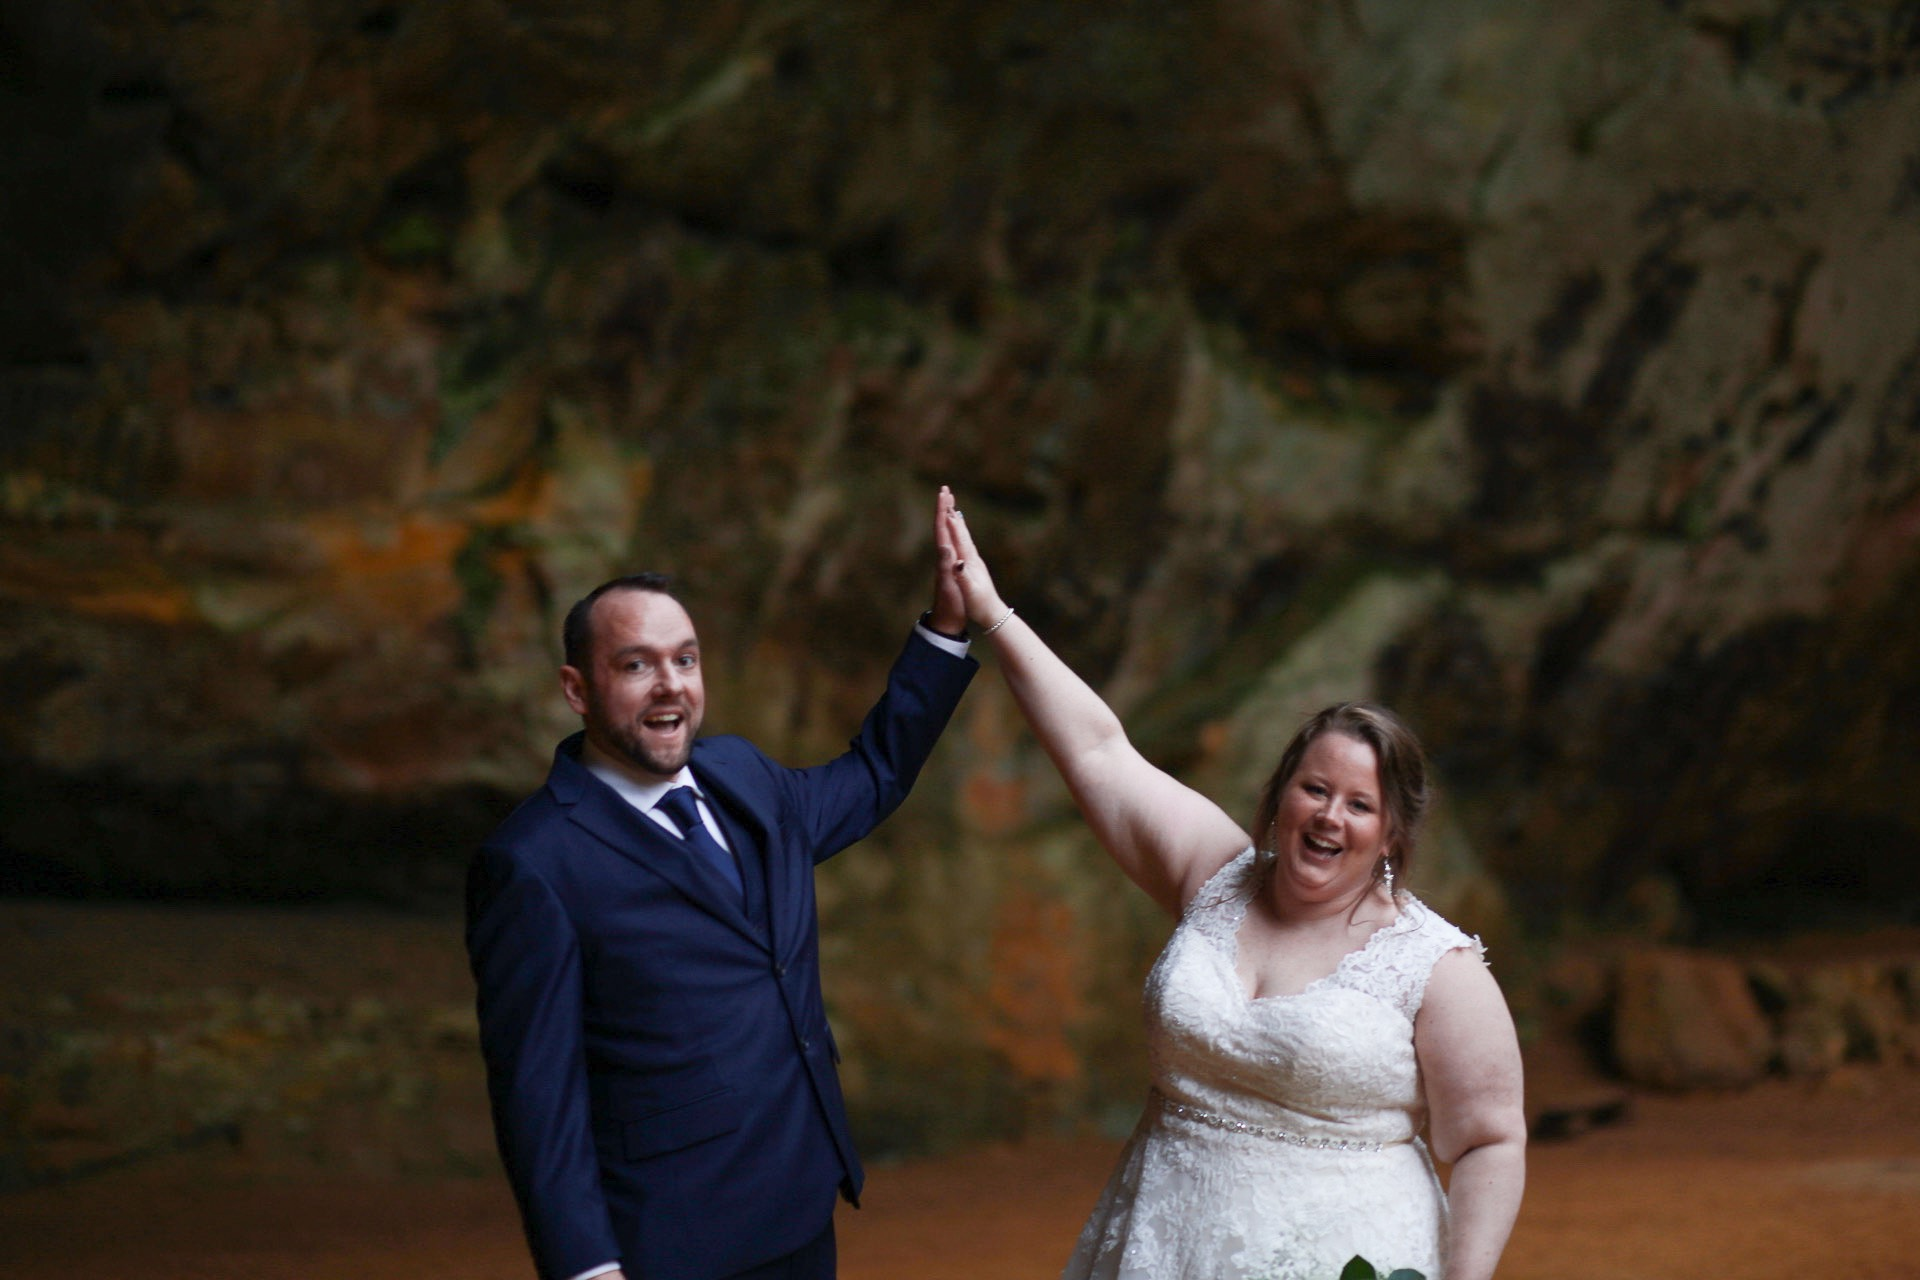 Bride and Groom High Fiving